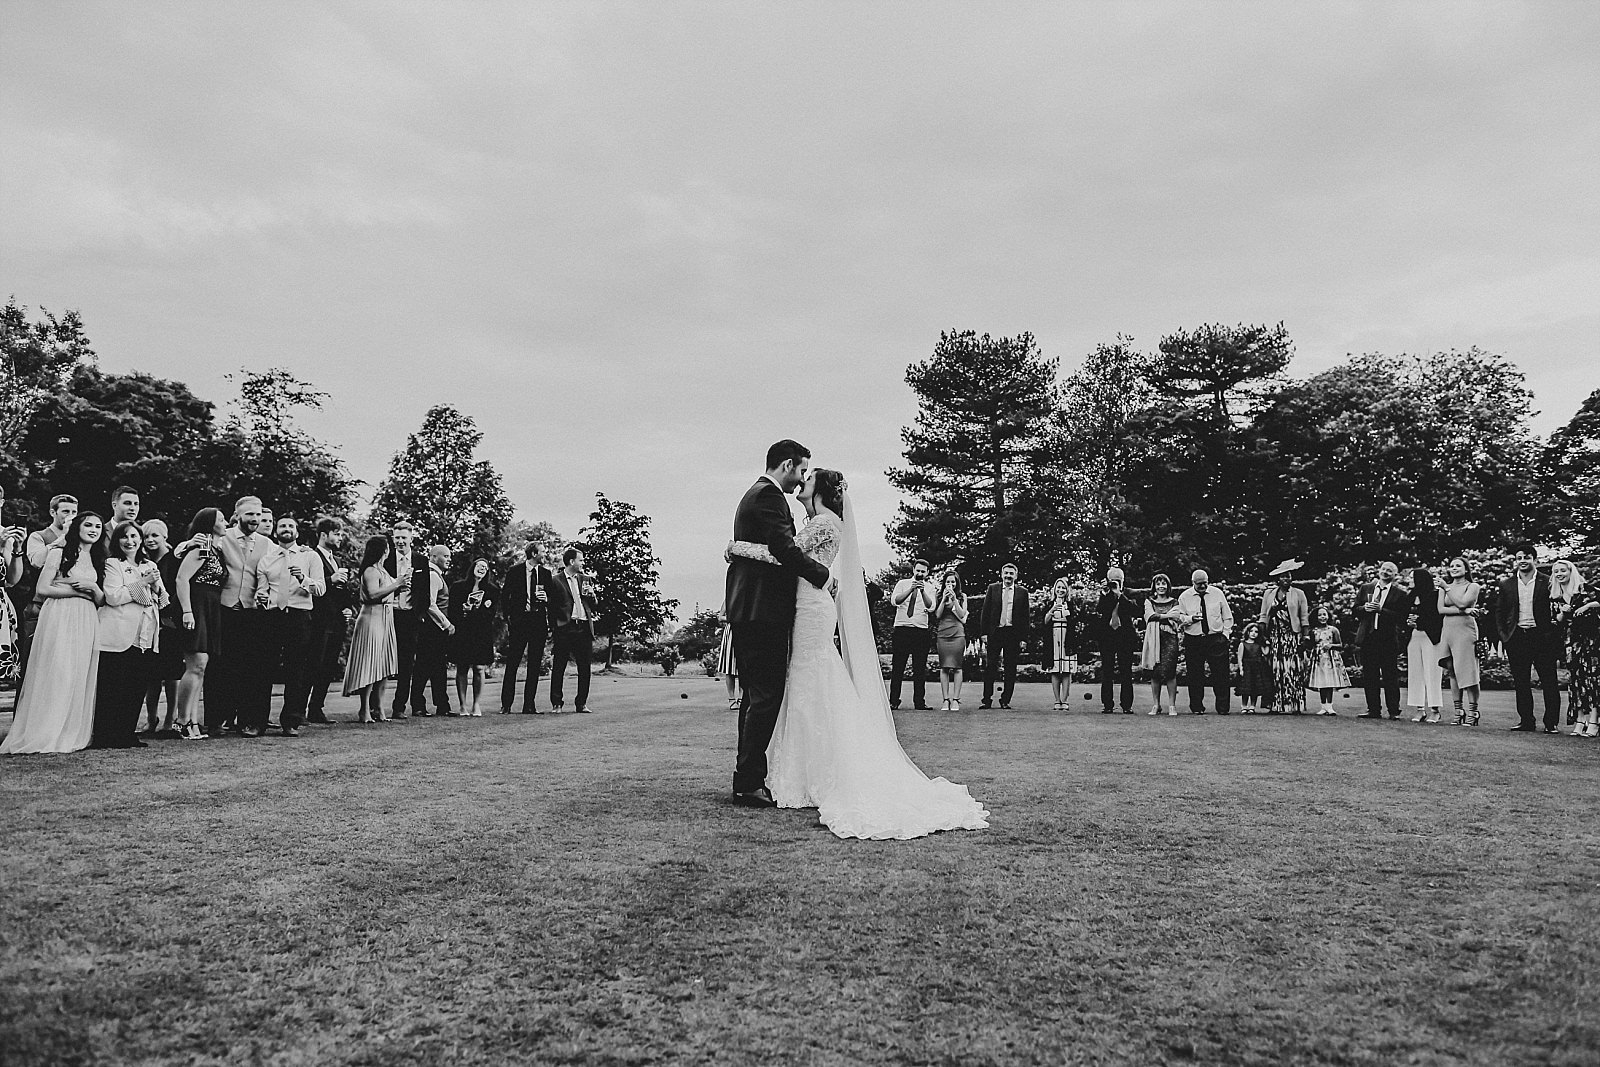 quirky wedding photographer captures first dance at eaves hall